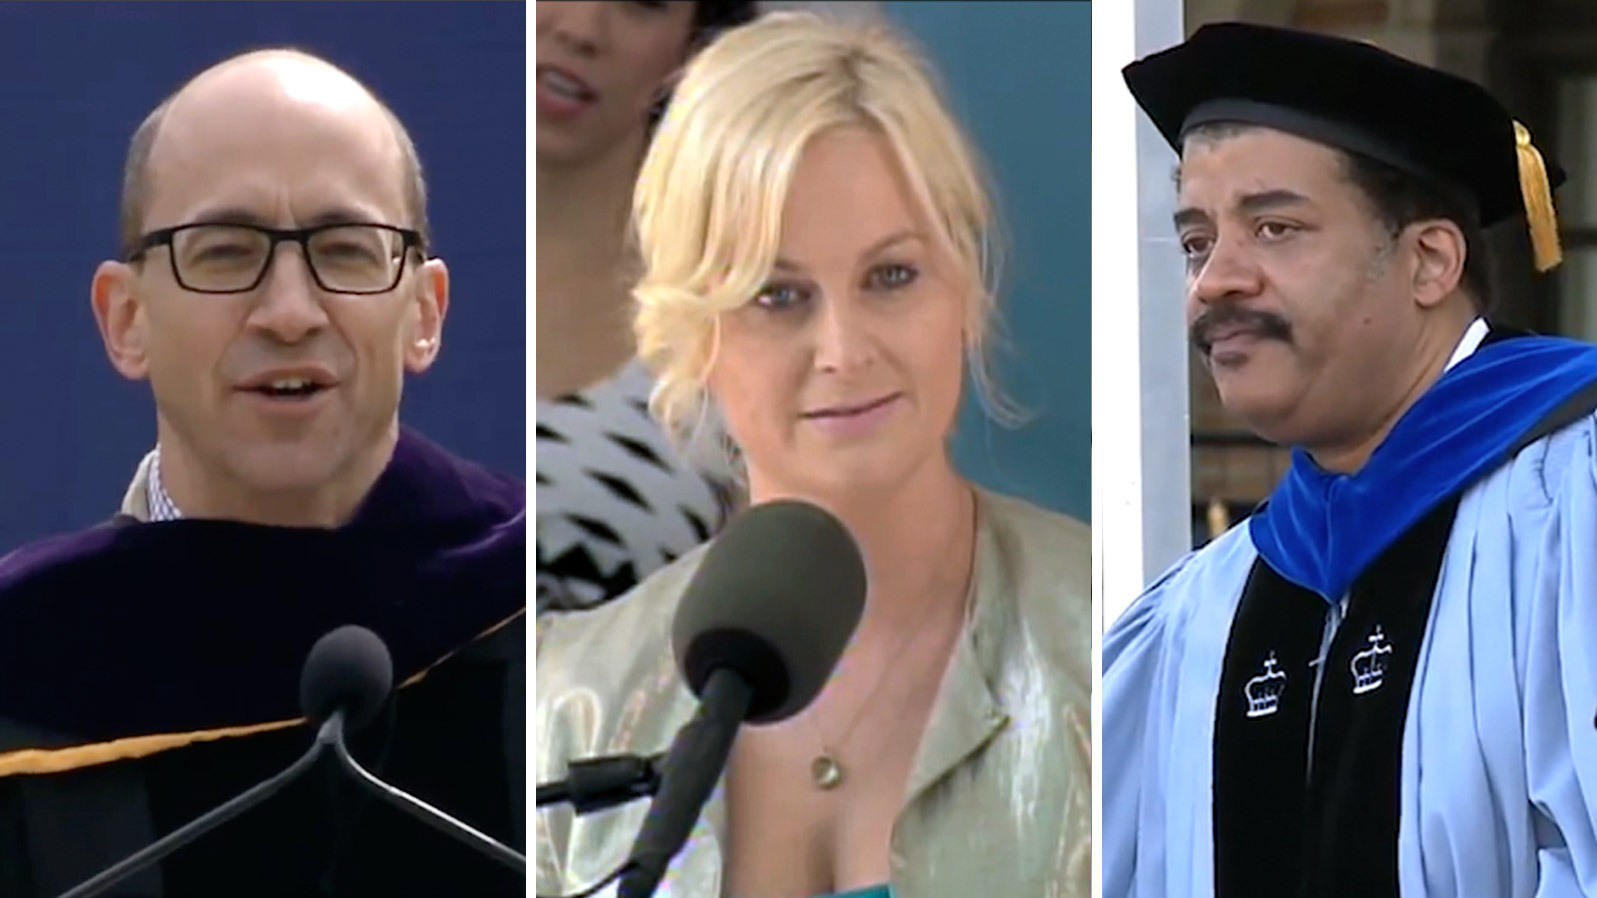 Commencement Mashup: The Speech In 8 Easy Steps | KUT